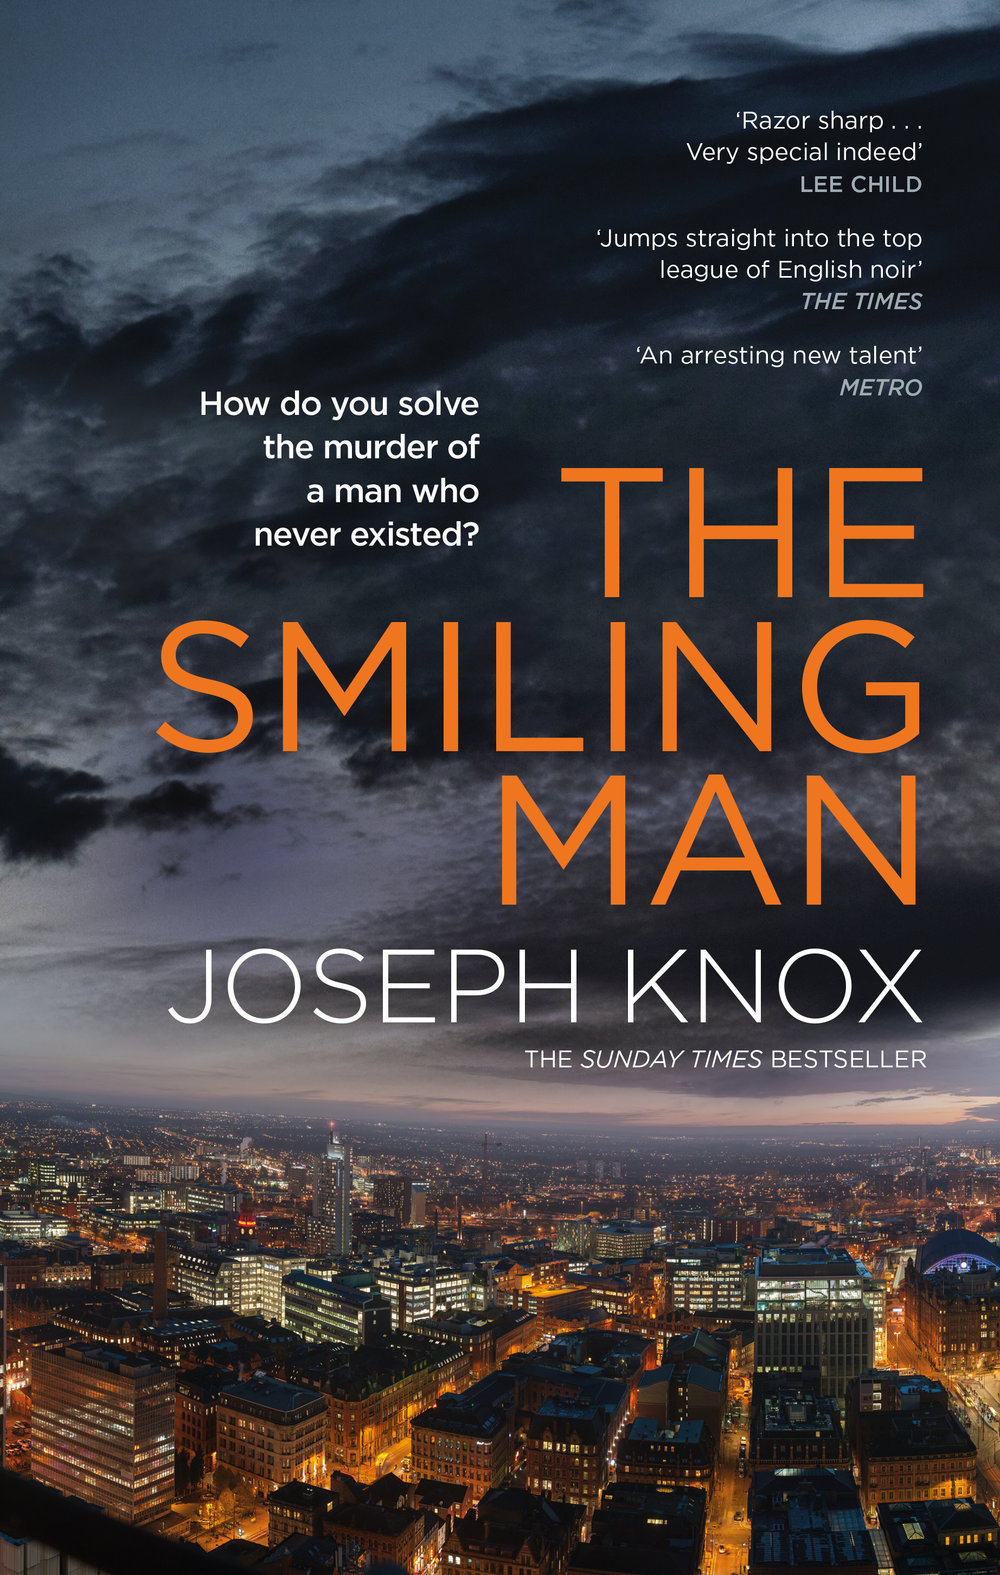 The Smiling Man reviewed: - 'Knox writes electric novels. A major voice in fiction, and a writer of furious talent.' (A.J. Finn, author of The Woman in the Window)'Knox's first novel was pedal-to-the-floor stuff, and this is even more powerful. One thing is sure: Knox is no one-hit wonder.' (Barry Forshaw, The Guardian)'If you liked Sirens, you will love The Smiling Man. Gritty, noir, and packing a punch from the very first page.' (Jane Harper, author of The Dry)'Written with Knox's powerful descriptive prose and underpinned with black humour, a plot full of perfectly gathered threads, and a bone-chilling, gut-wrenching intensity, this remarkable thriller is proof of an author with far more than one 'big' book to his name.' (Pam Norfolk, Lancashire Post)